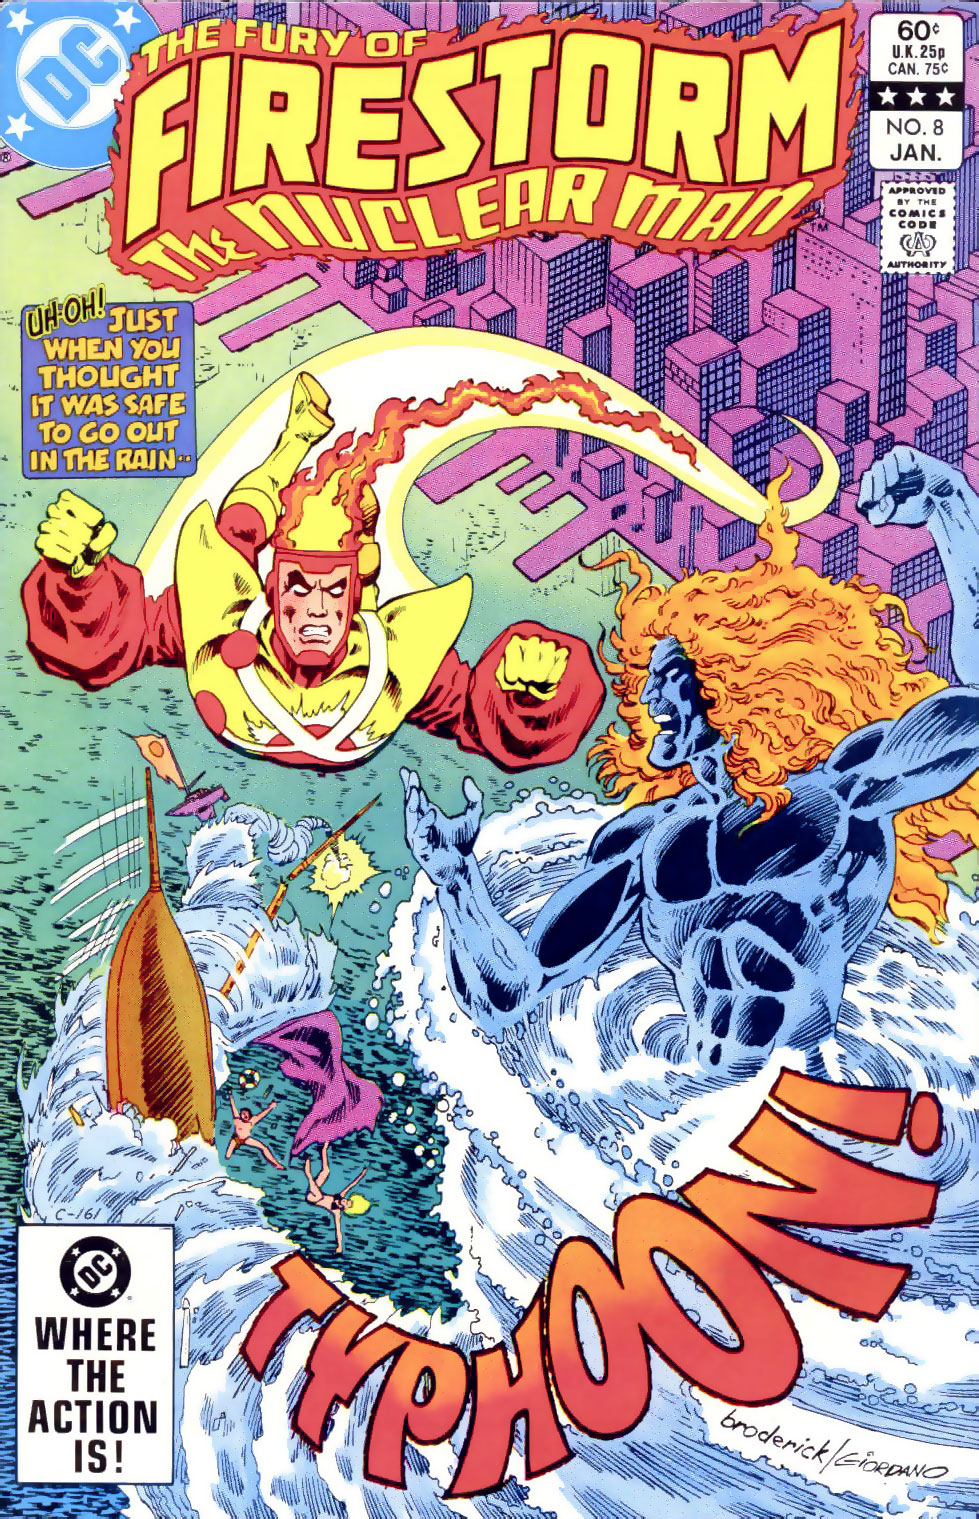 Fury of Firestorm The Nuclear Man vol II #8 cover by Pat Broderick and Dick Giordano